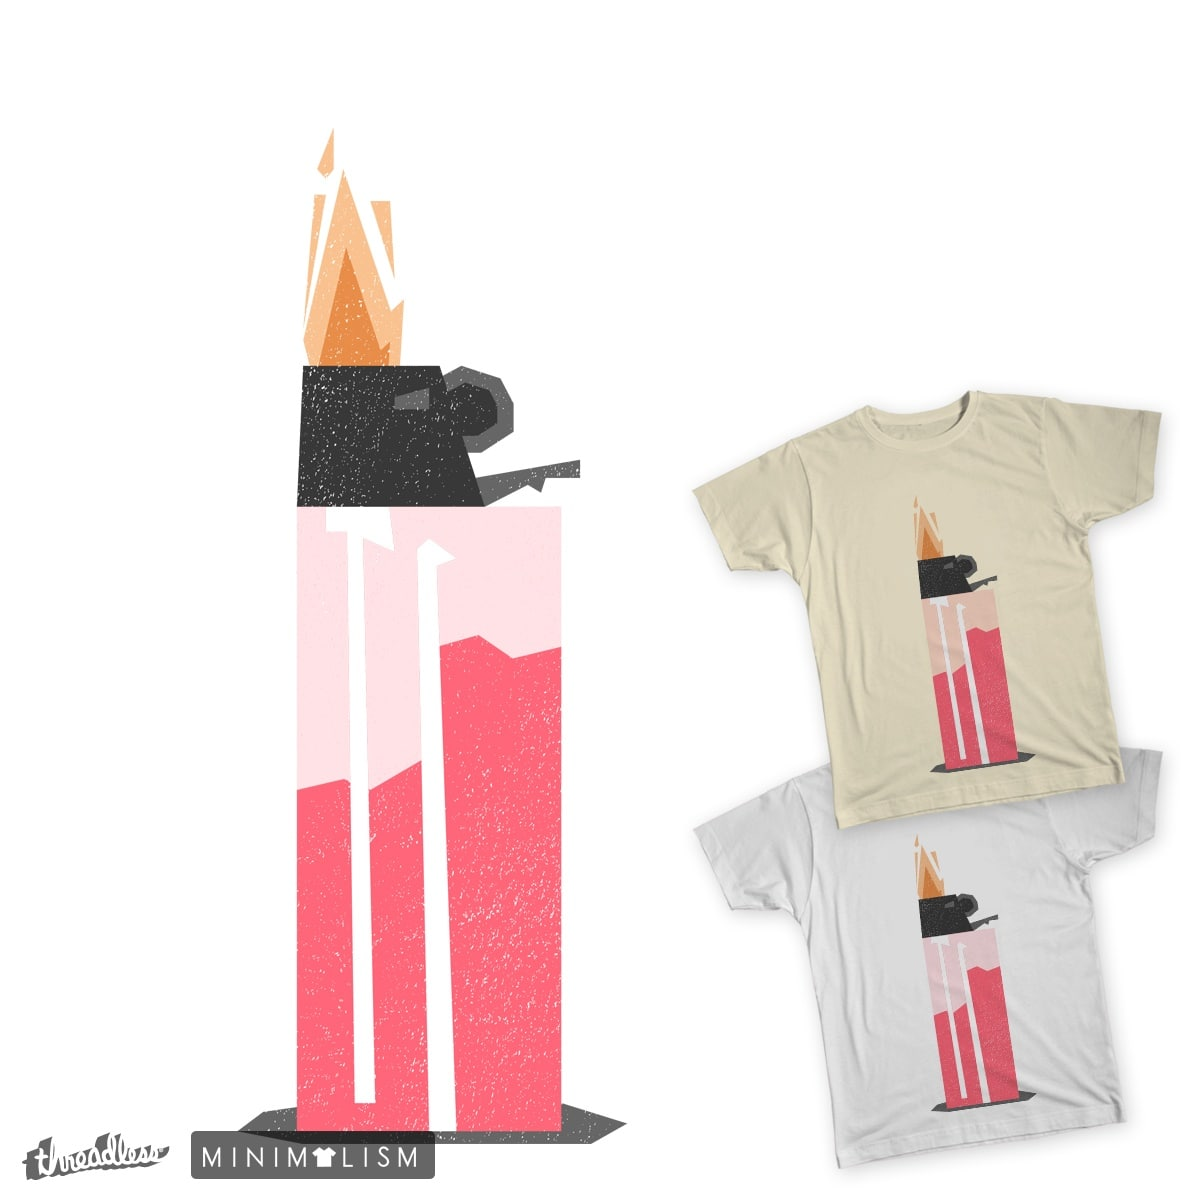 on fire by fajrimaulana on Threadless